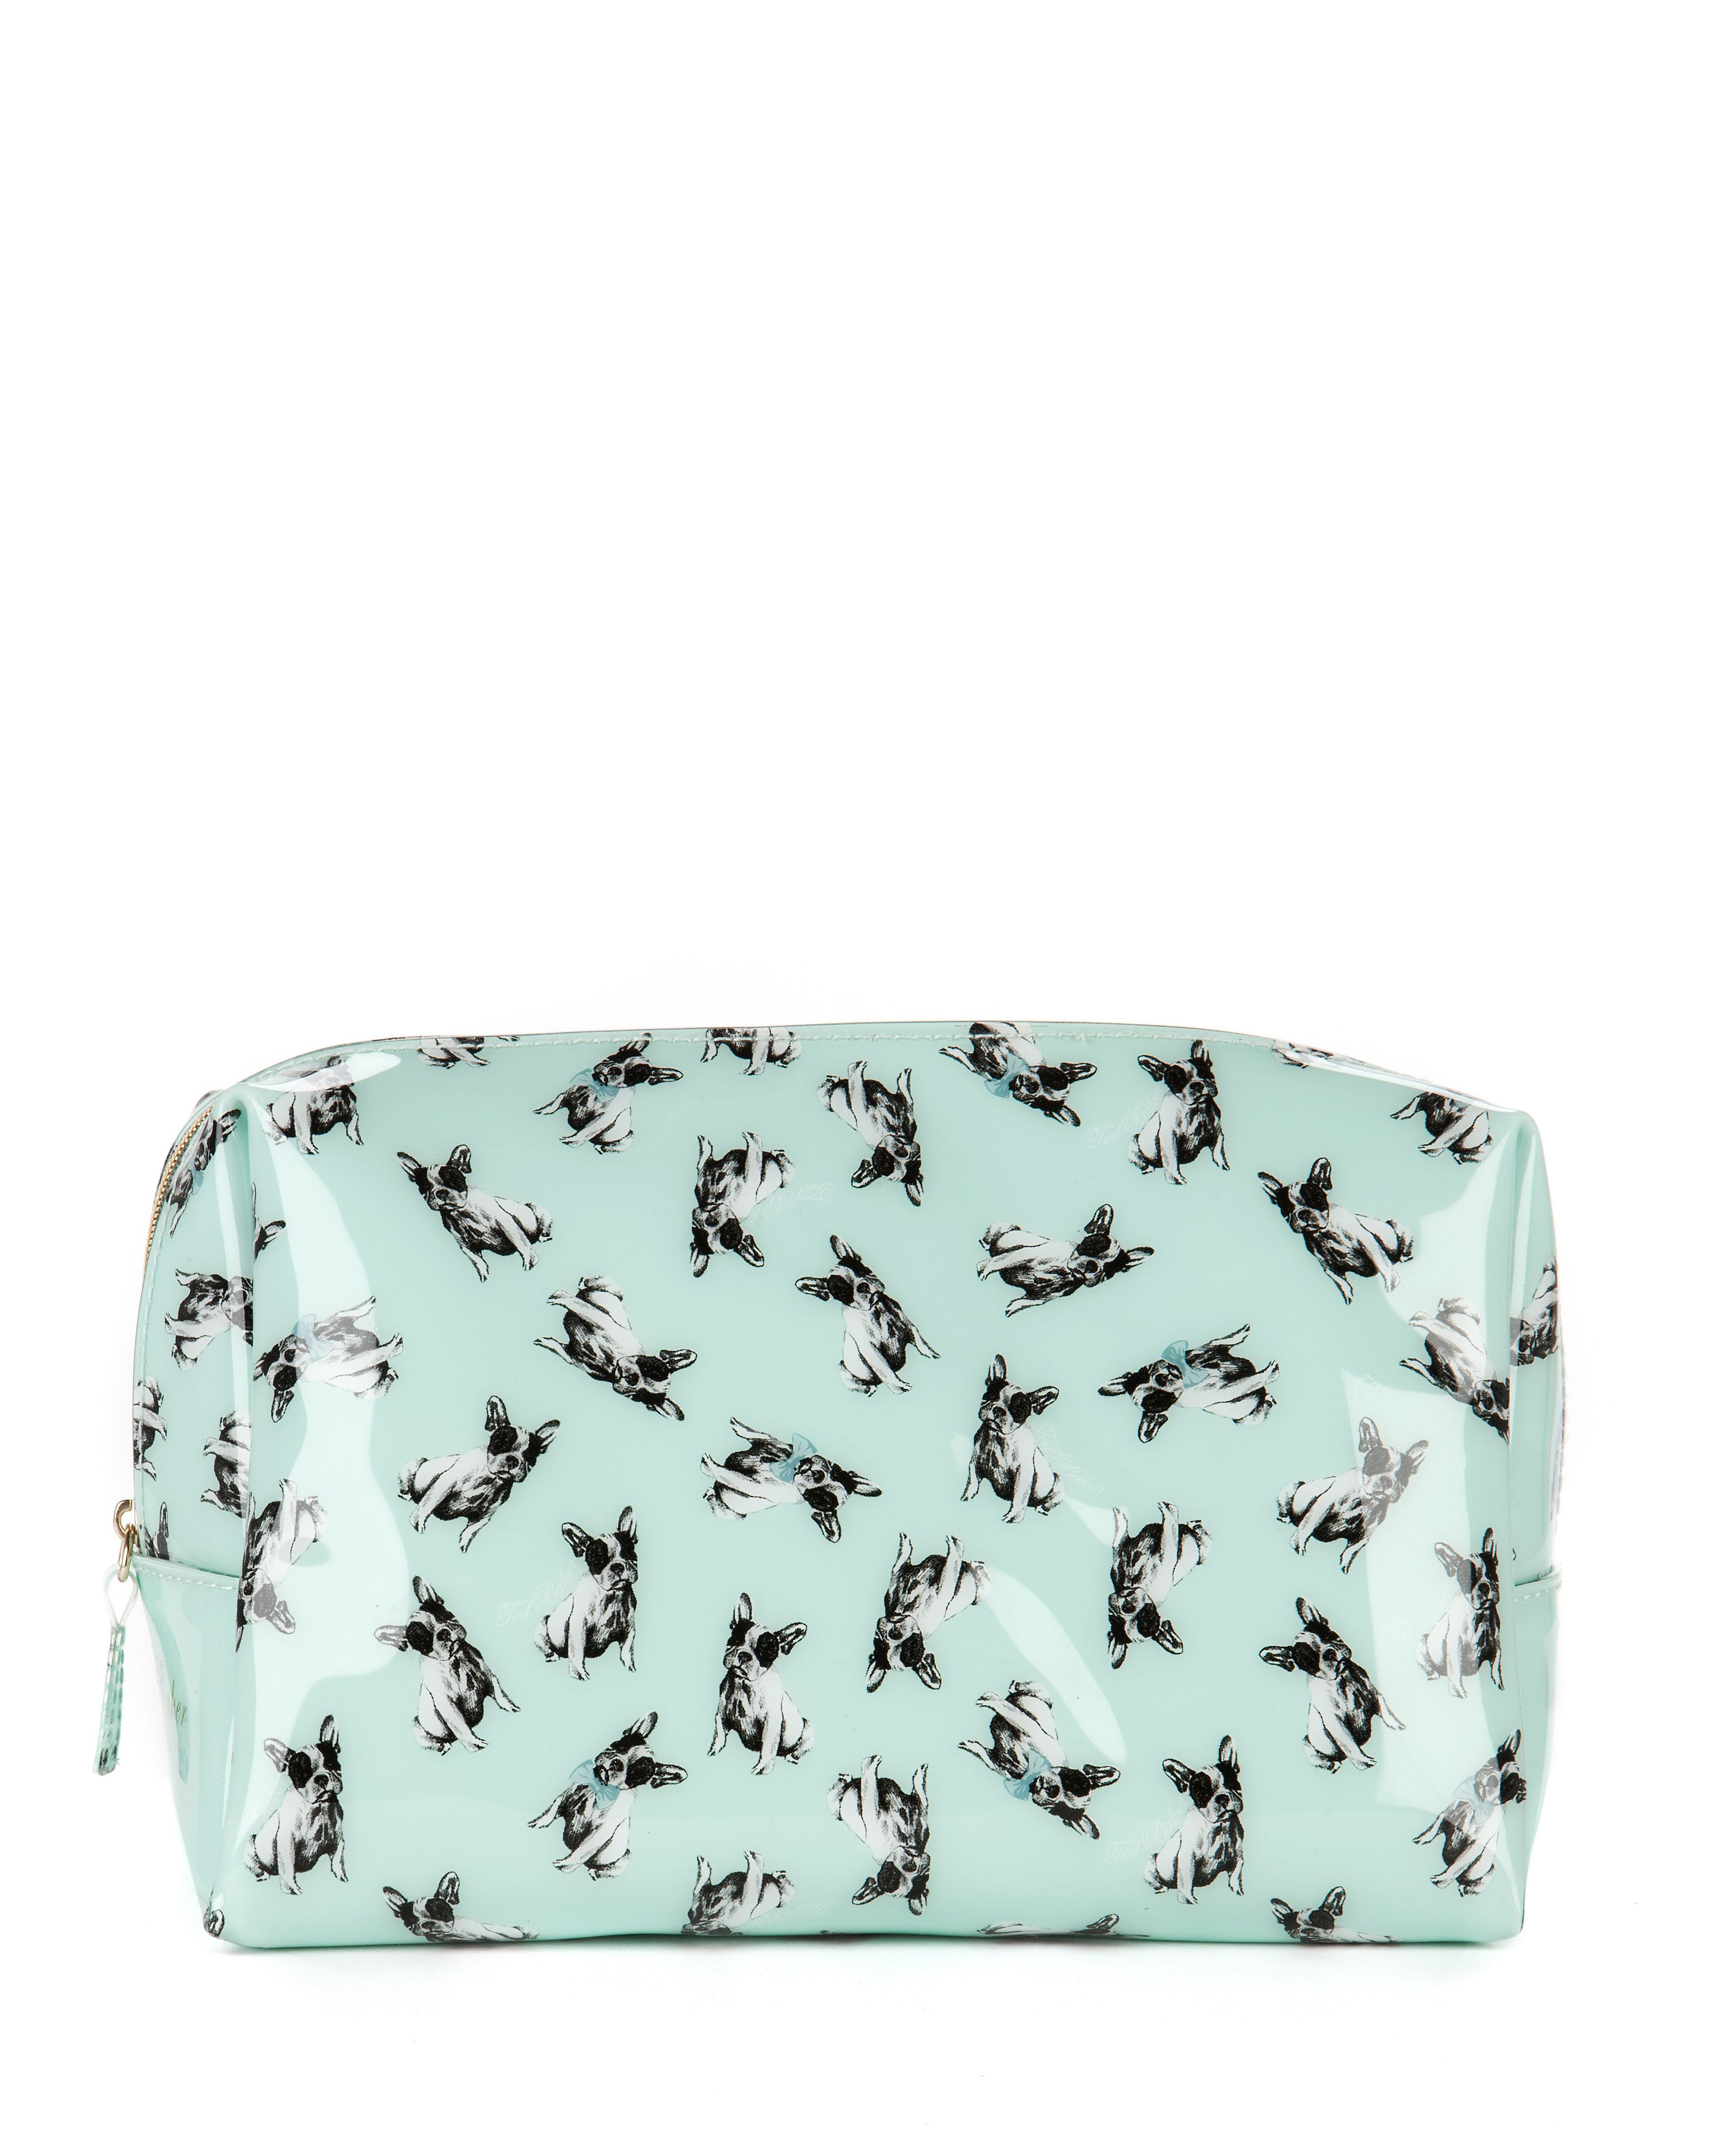 Dorin ditsy dog print washbag